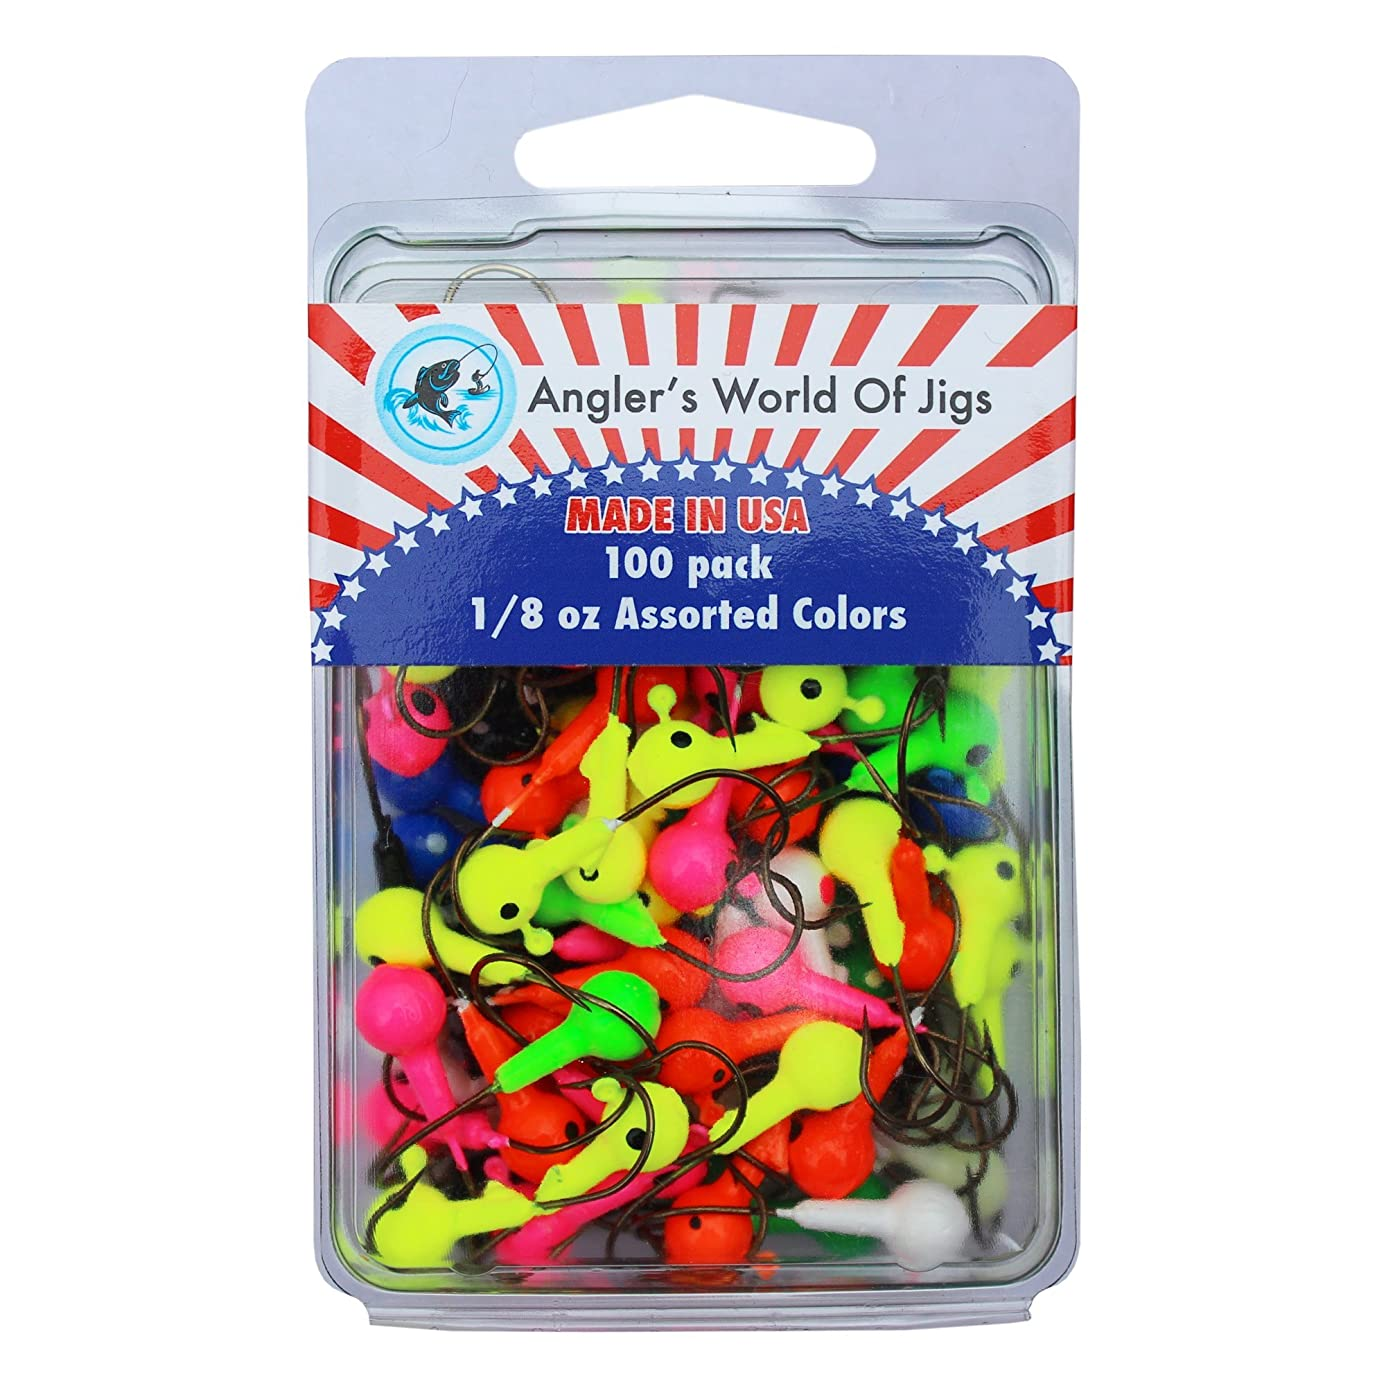 Vibrant Color Fishing Lures - Round Lead Ball Head Jigs with Barb Lazer Sharp Fishing Hooks- Bait for Worms Shrimp in Freshwater- Glow in Dark and Bright Colors Options